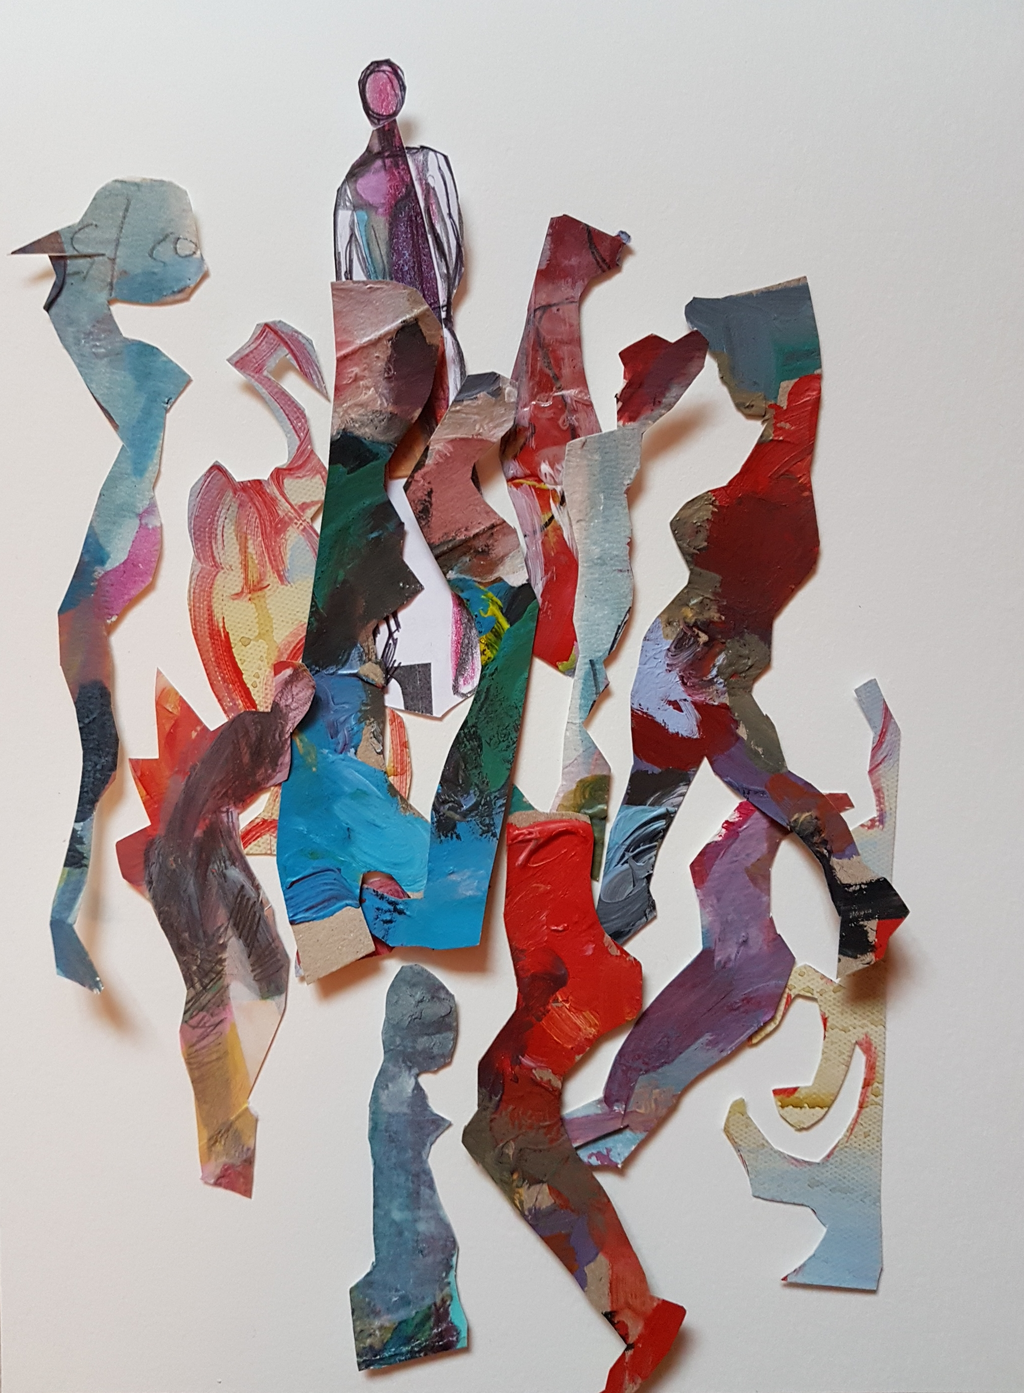 IVILINA KOUNEVA. Braving our way through - painted cut-outs on paper